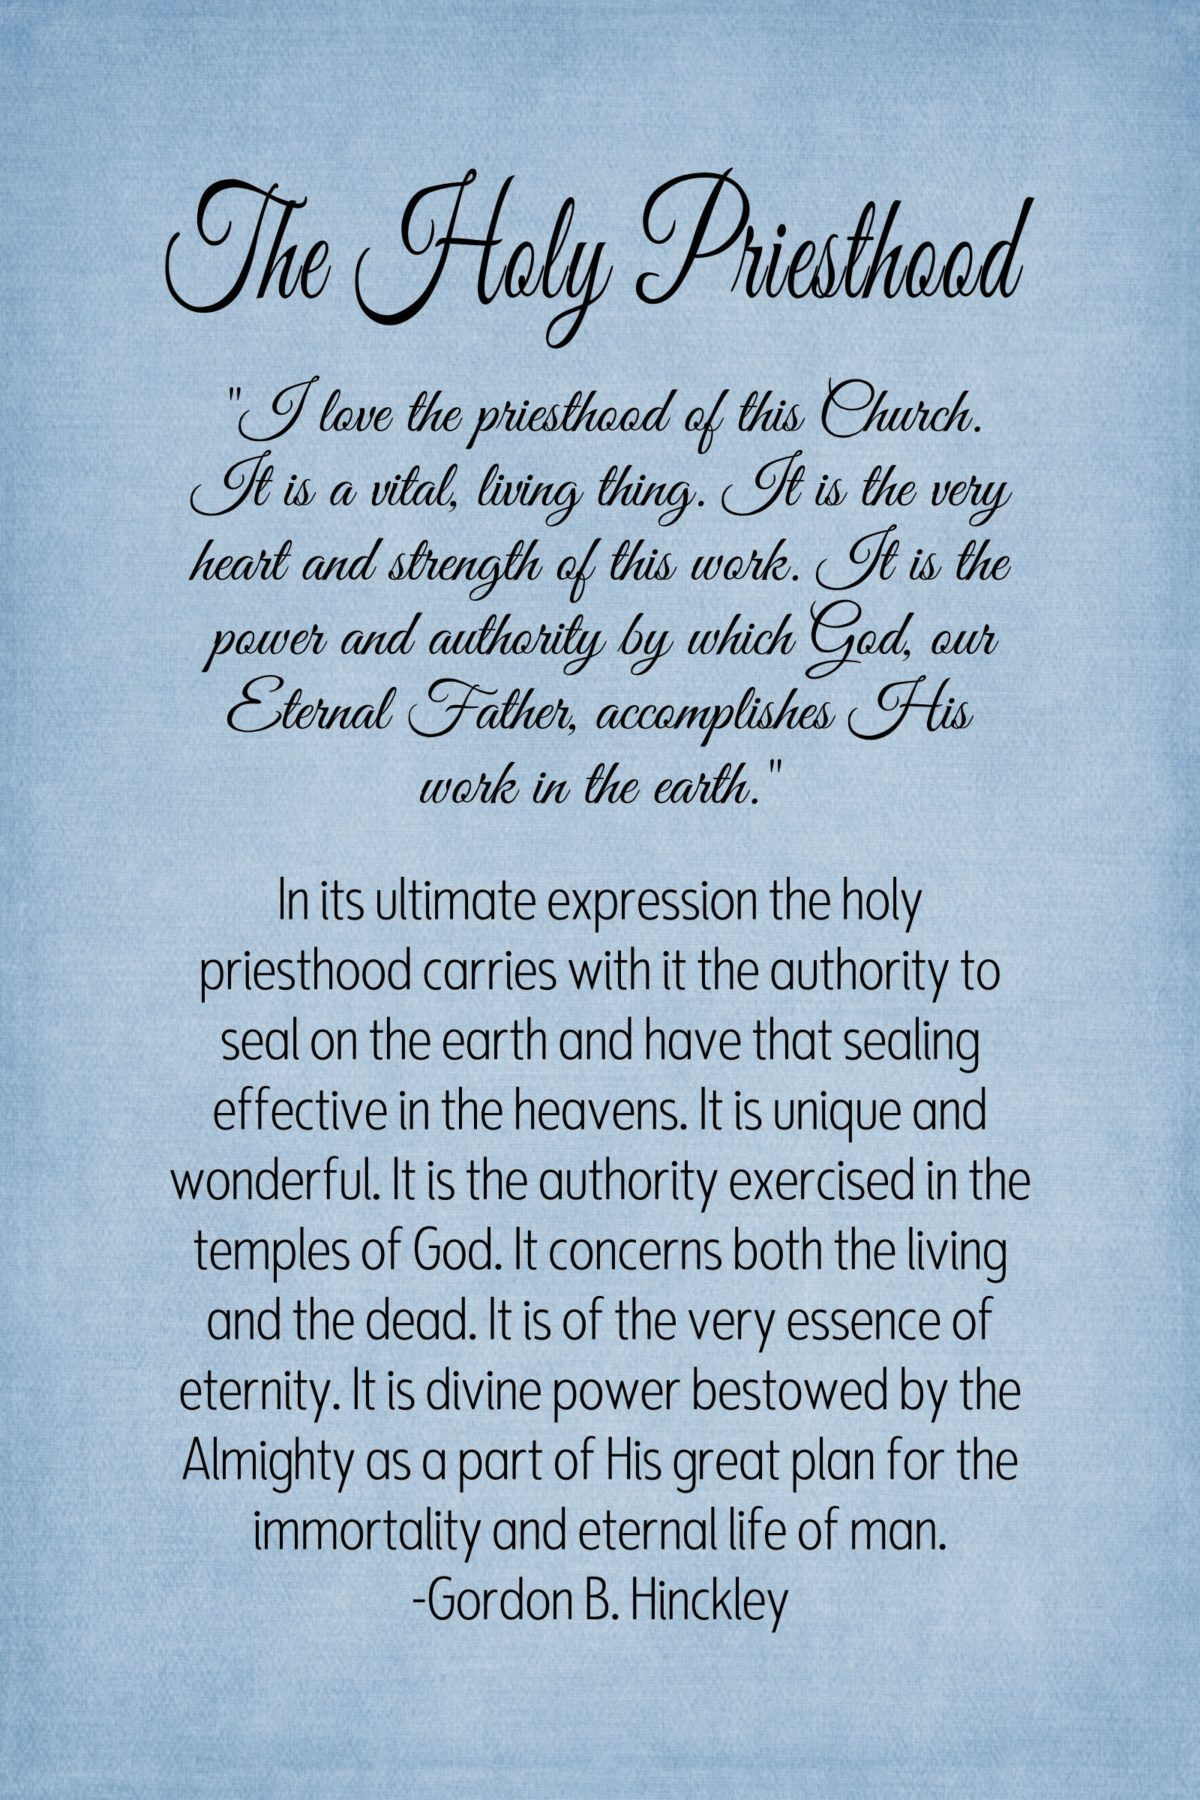 15- Chapter 15 The Holy Priesthood